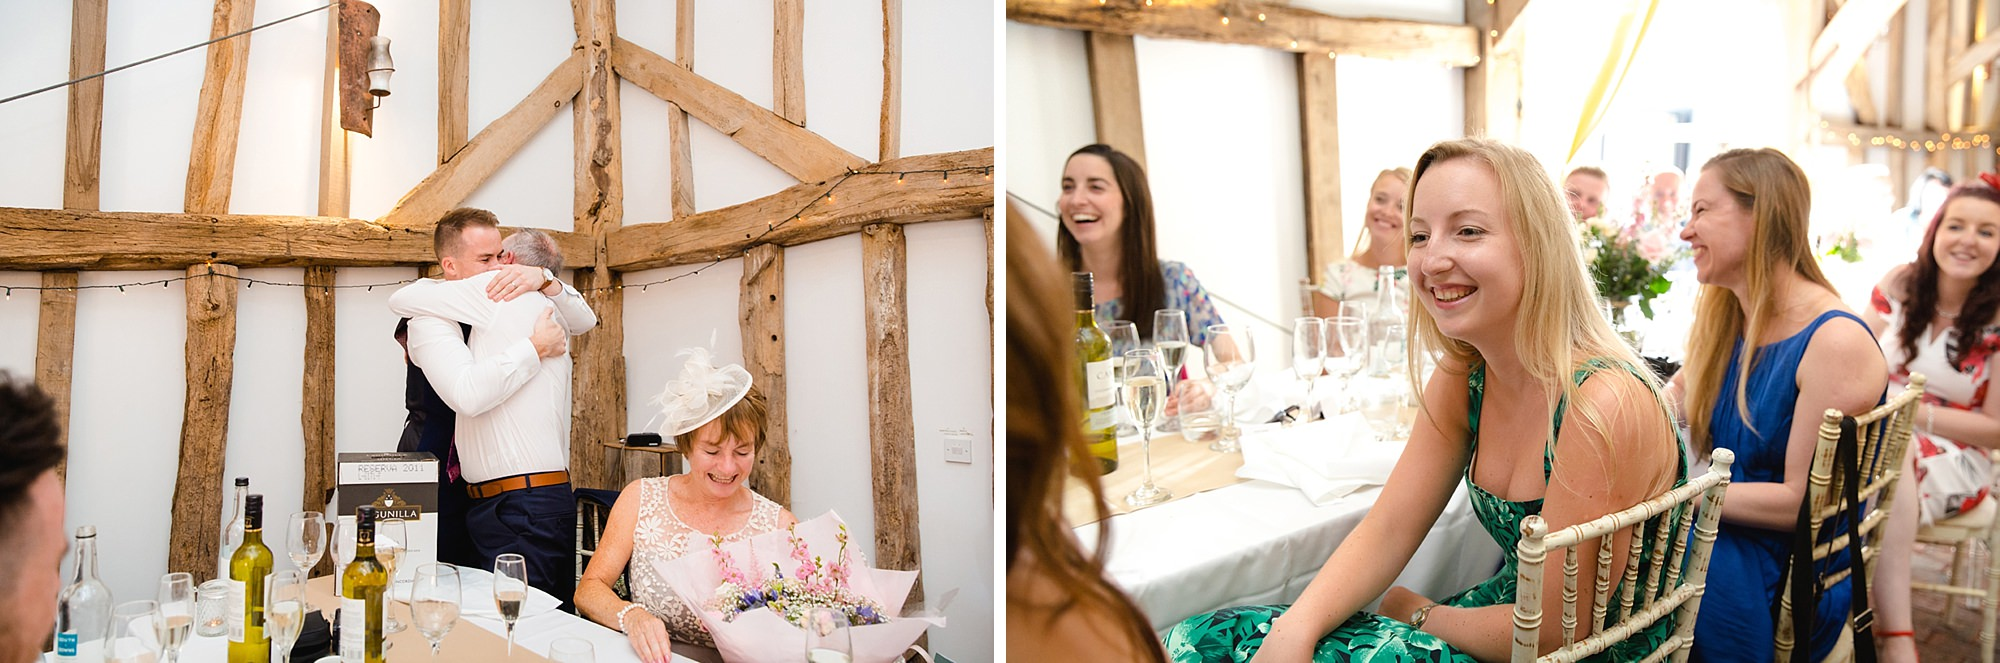 Old Greens Barn Newdigate wedding photography wedding guests during speeches